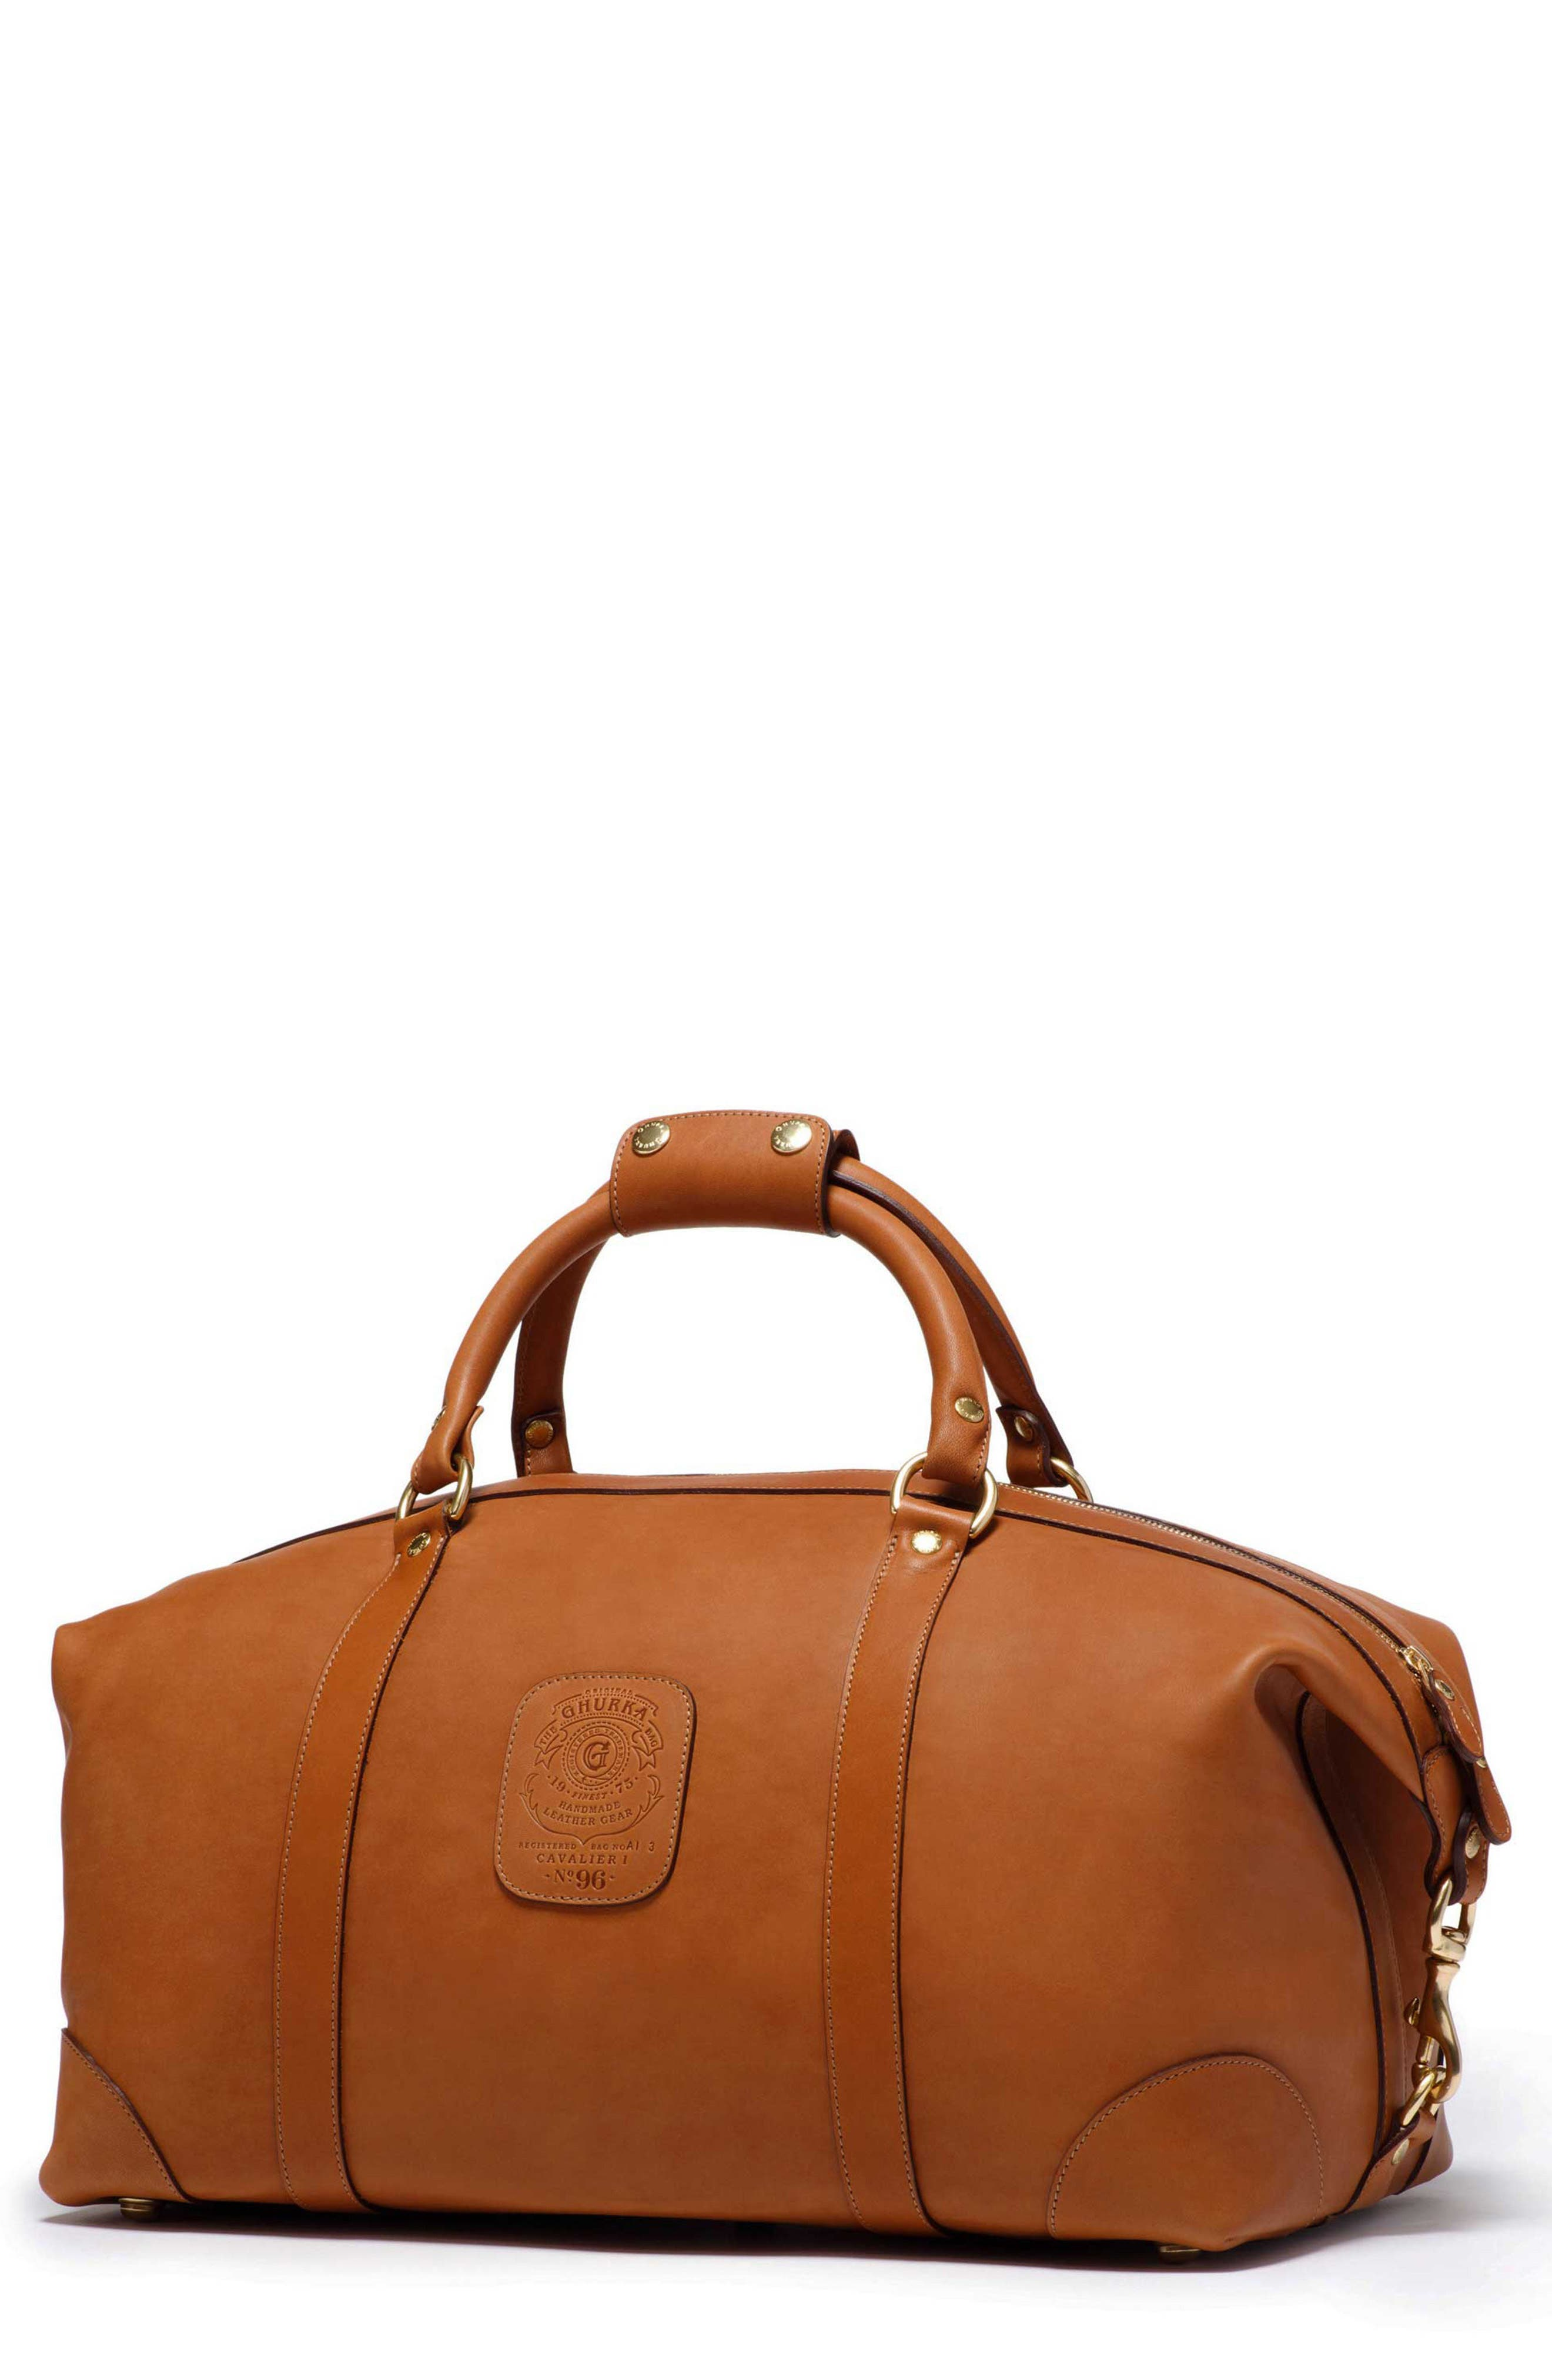 Ghurka Cavalier I Leather Duffel Bag